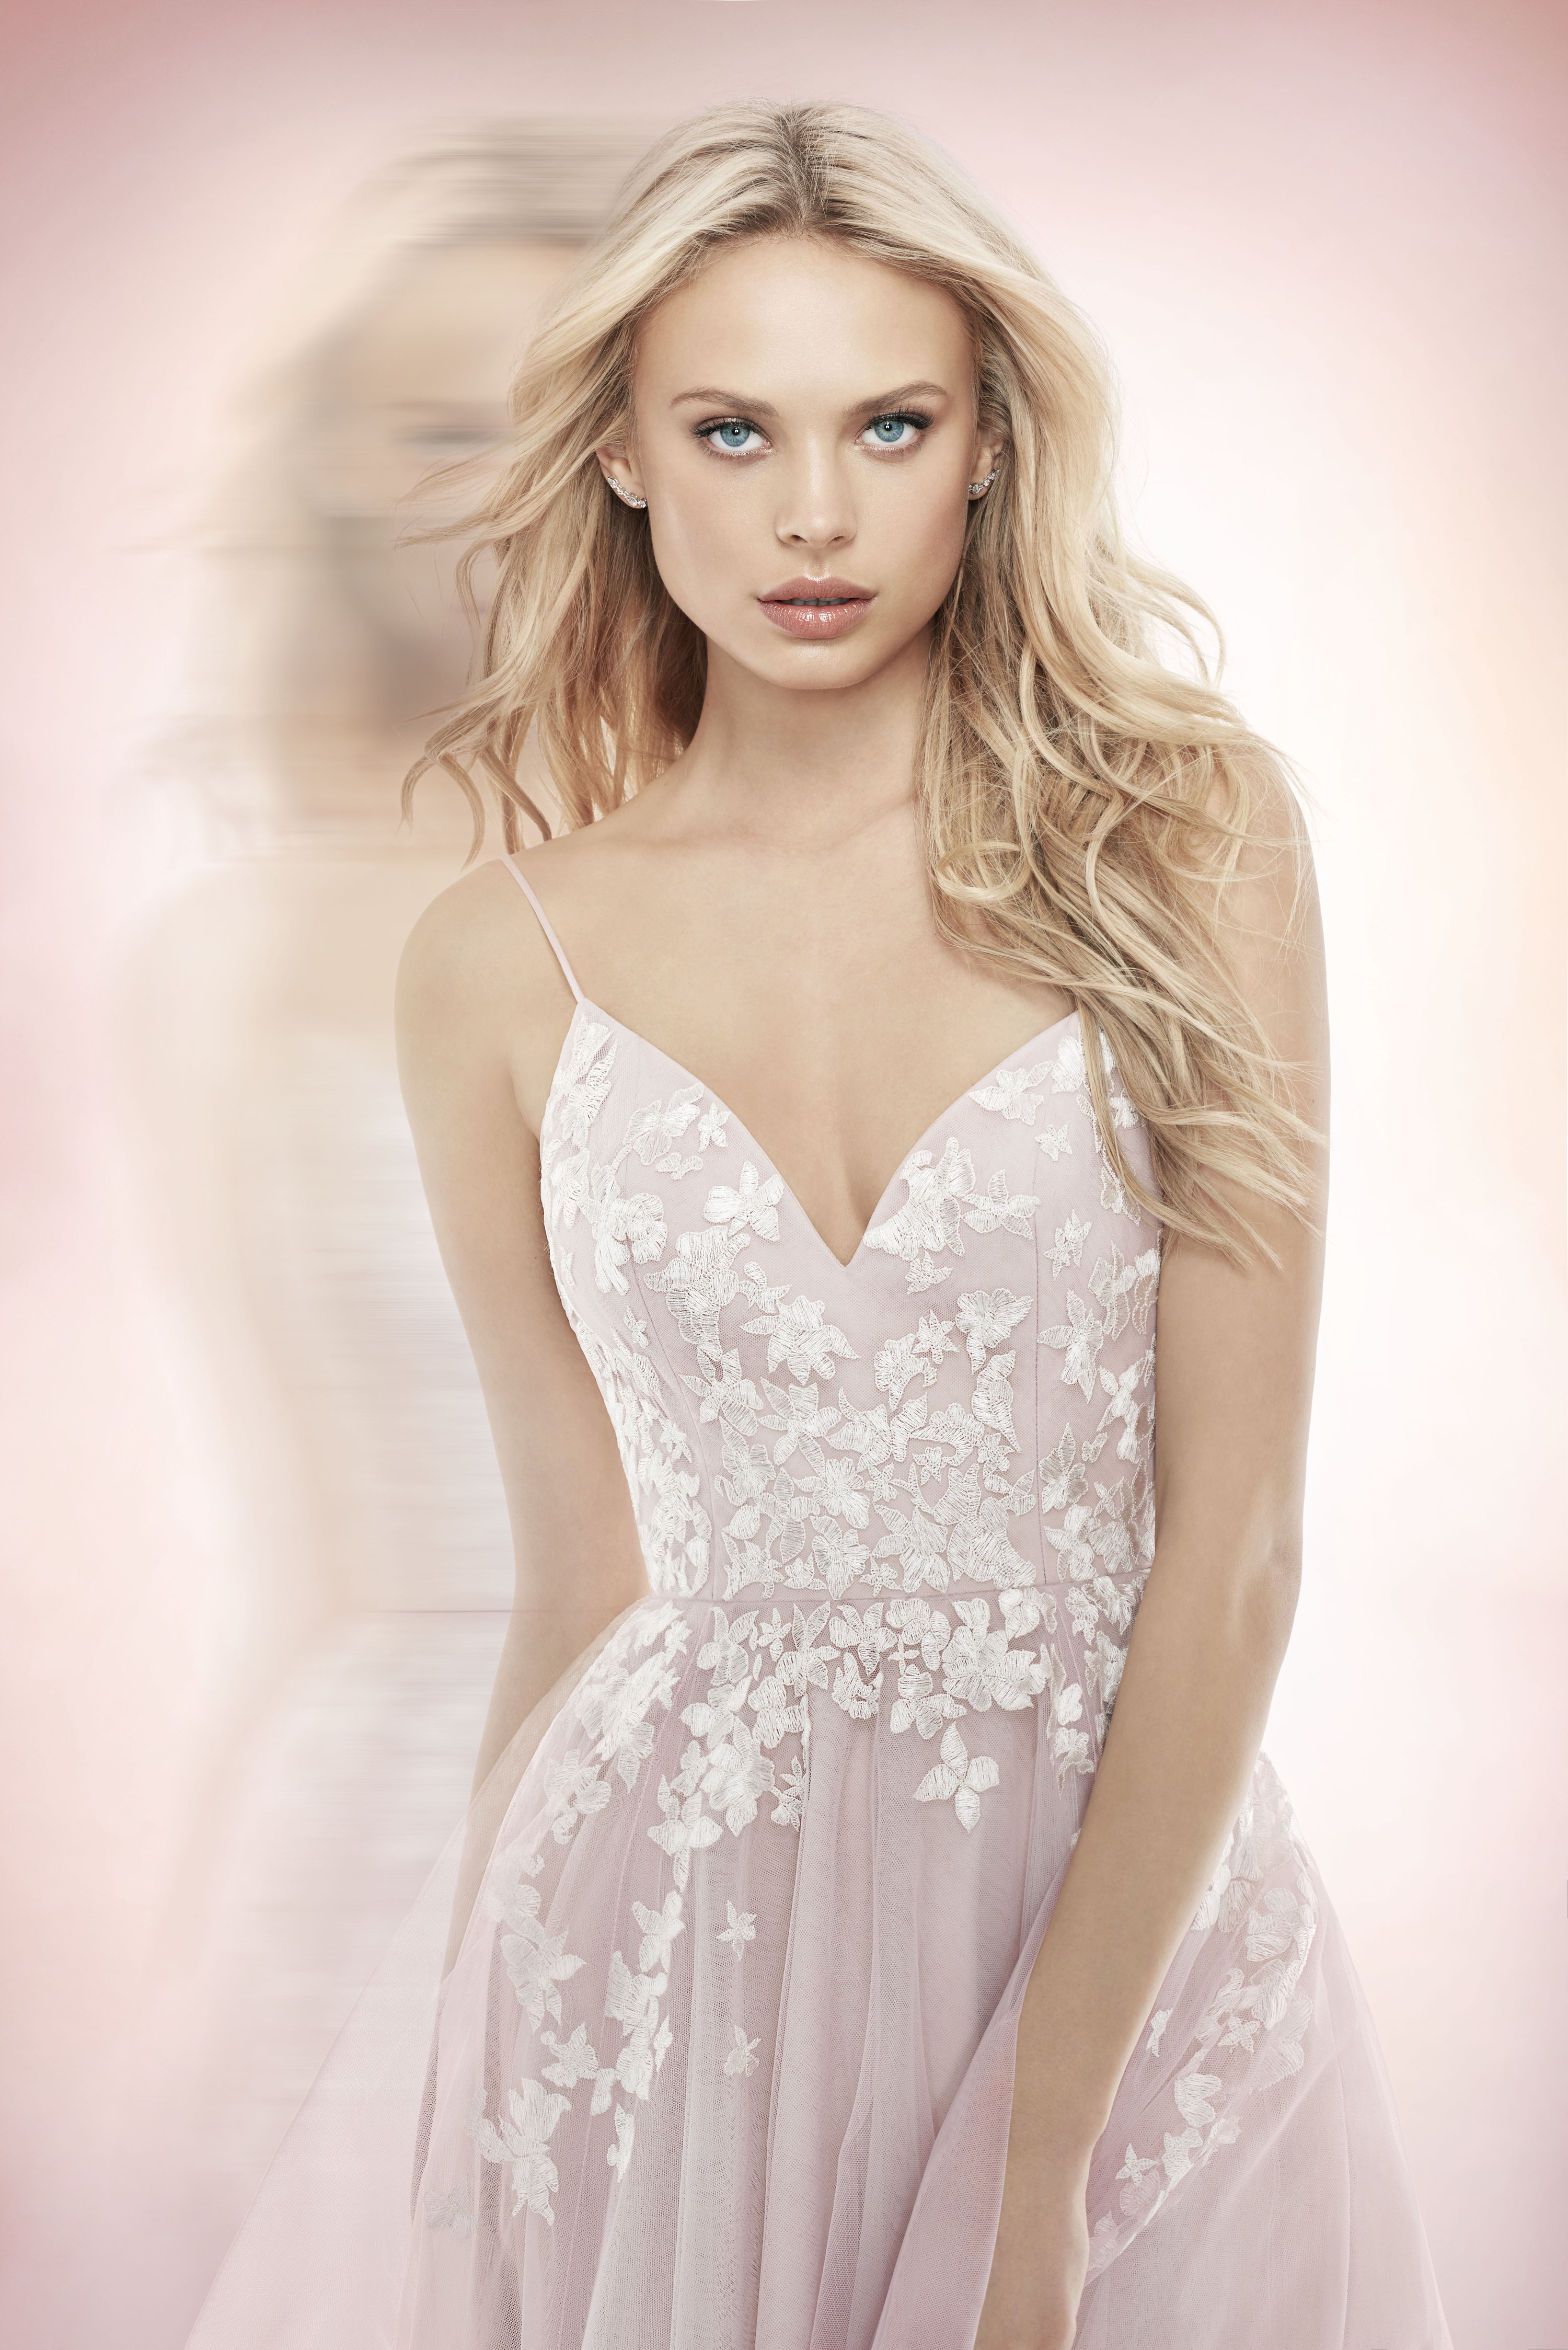 Bridal Gowns and Wedding Dresses by JLM Couture - Style 1709 Denver